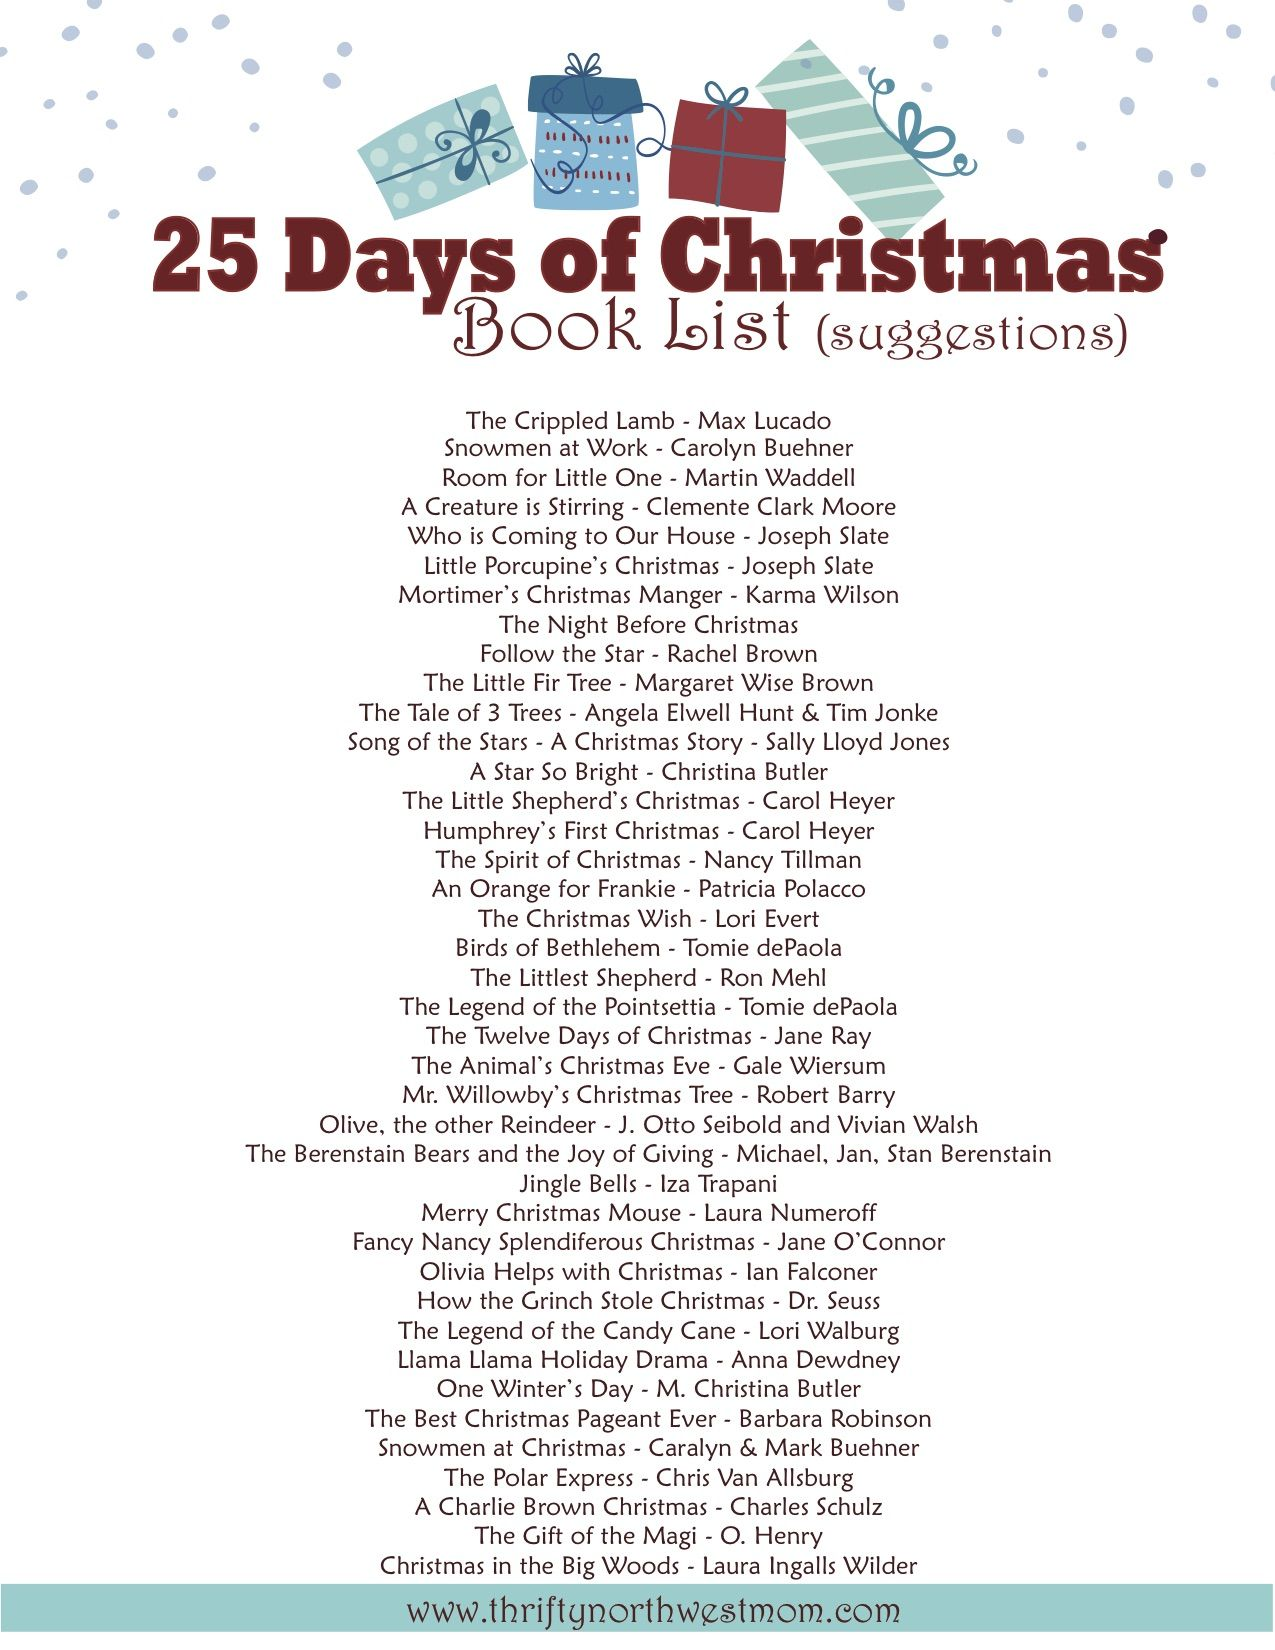 Gifts ideas for the 25 days of christmas